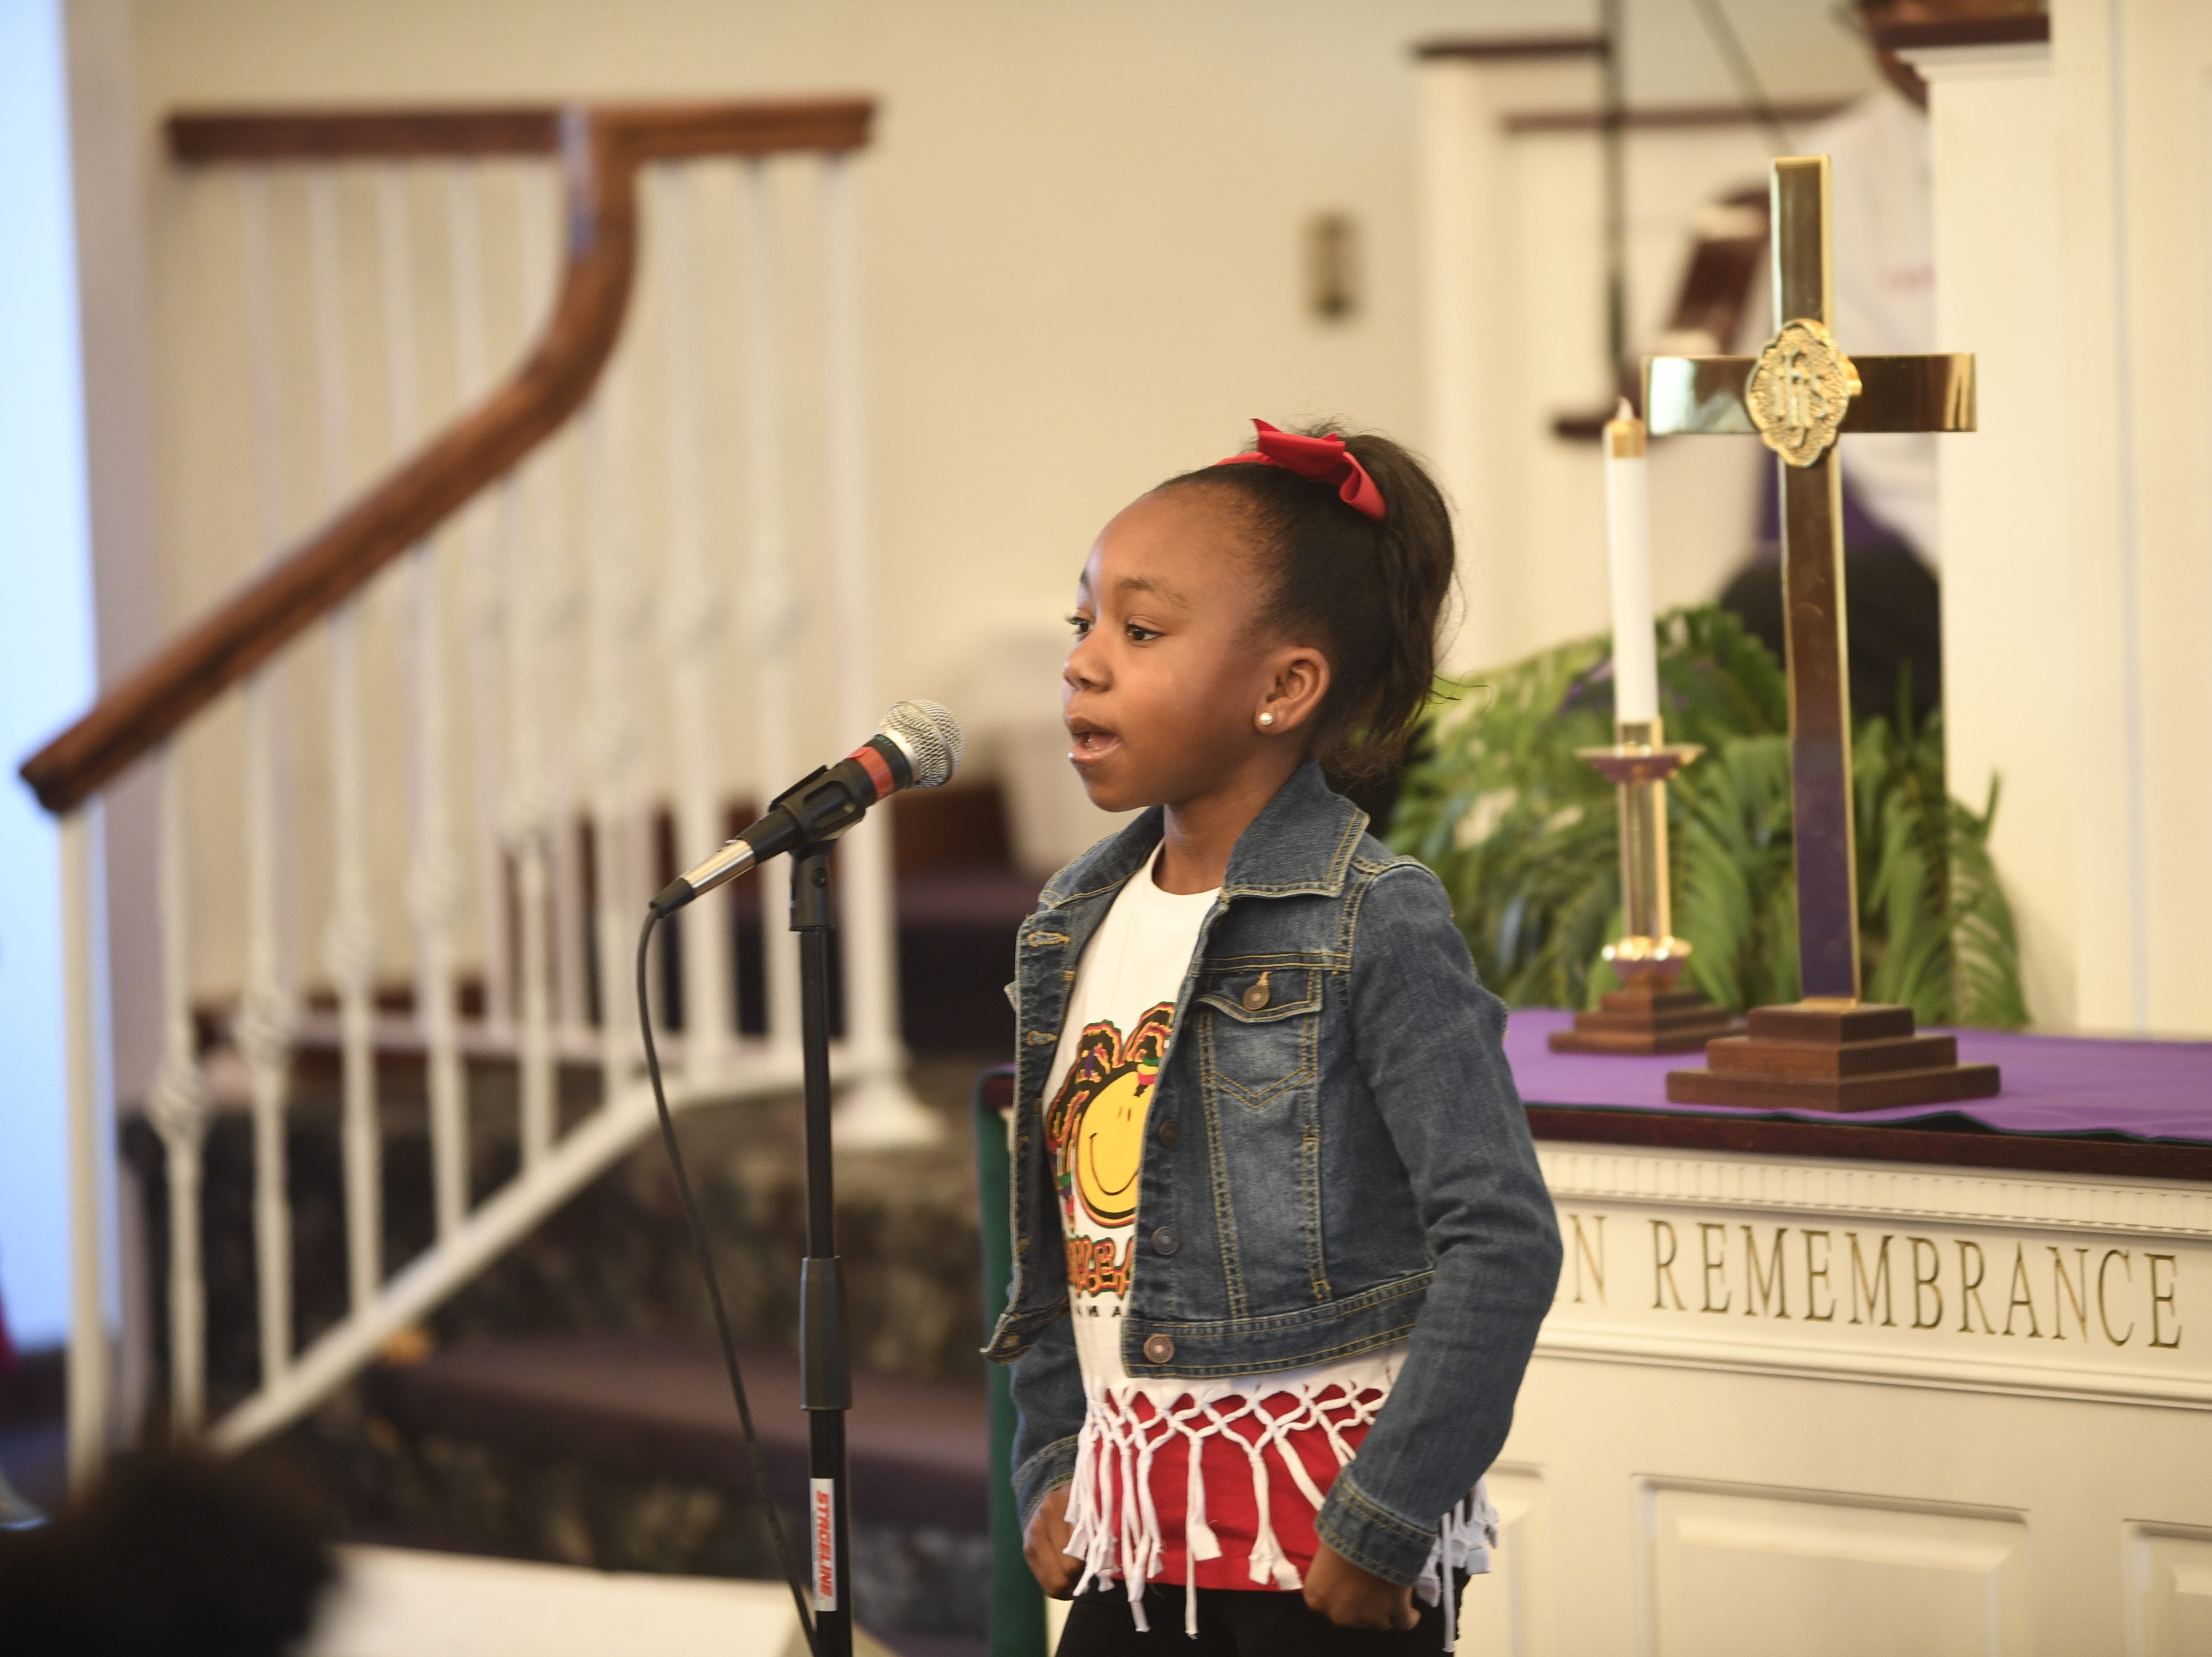 Bremiah Donaldson leads the audience in a song during Mt. Pleasant Church's Black History Month event, in Pinson, Tenn. Feb 24, 2019.